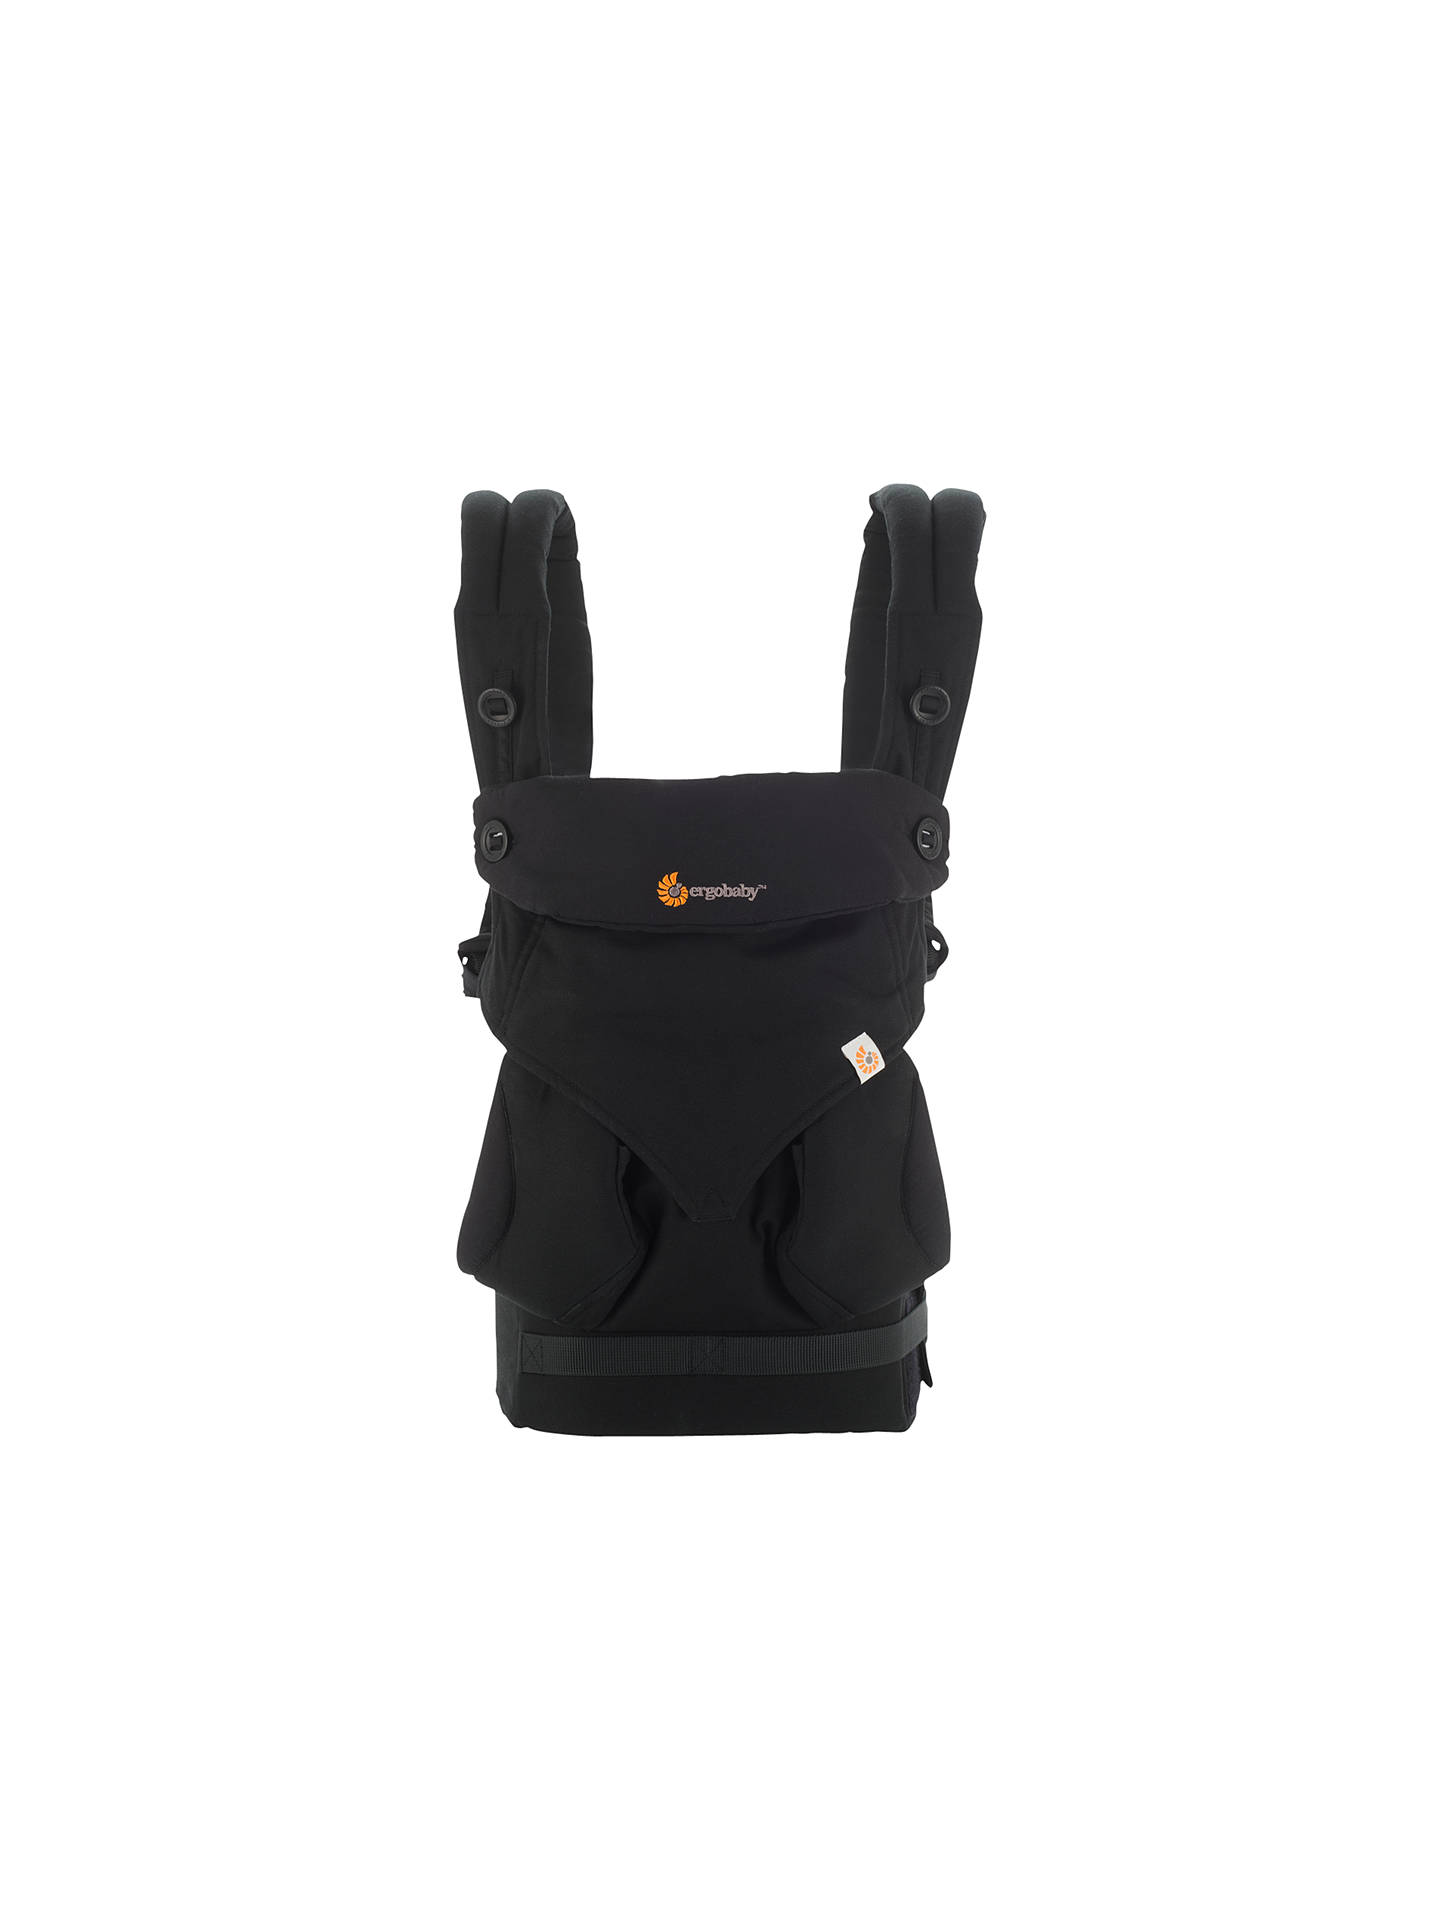 439b48b98aa Buy Ergobaby Four Position 360 Baby Carrier